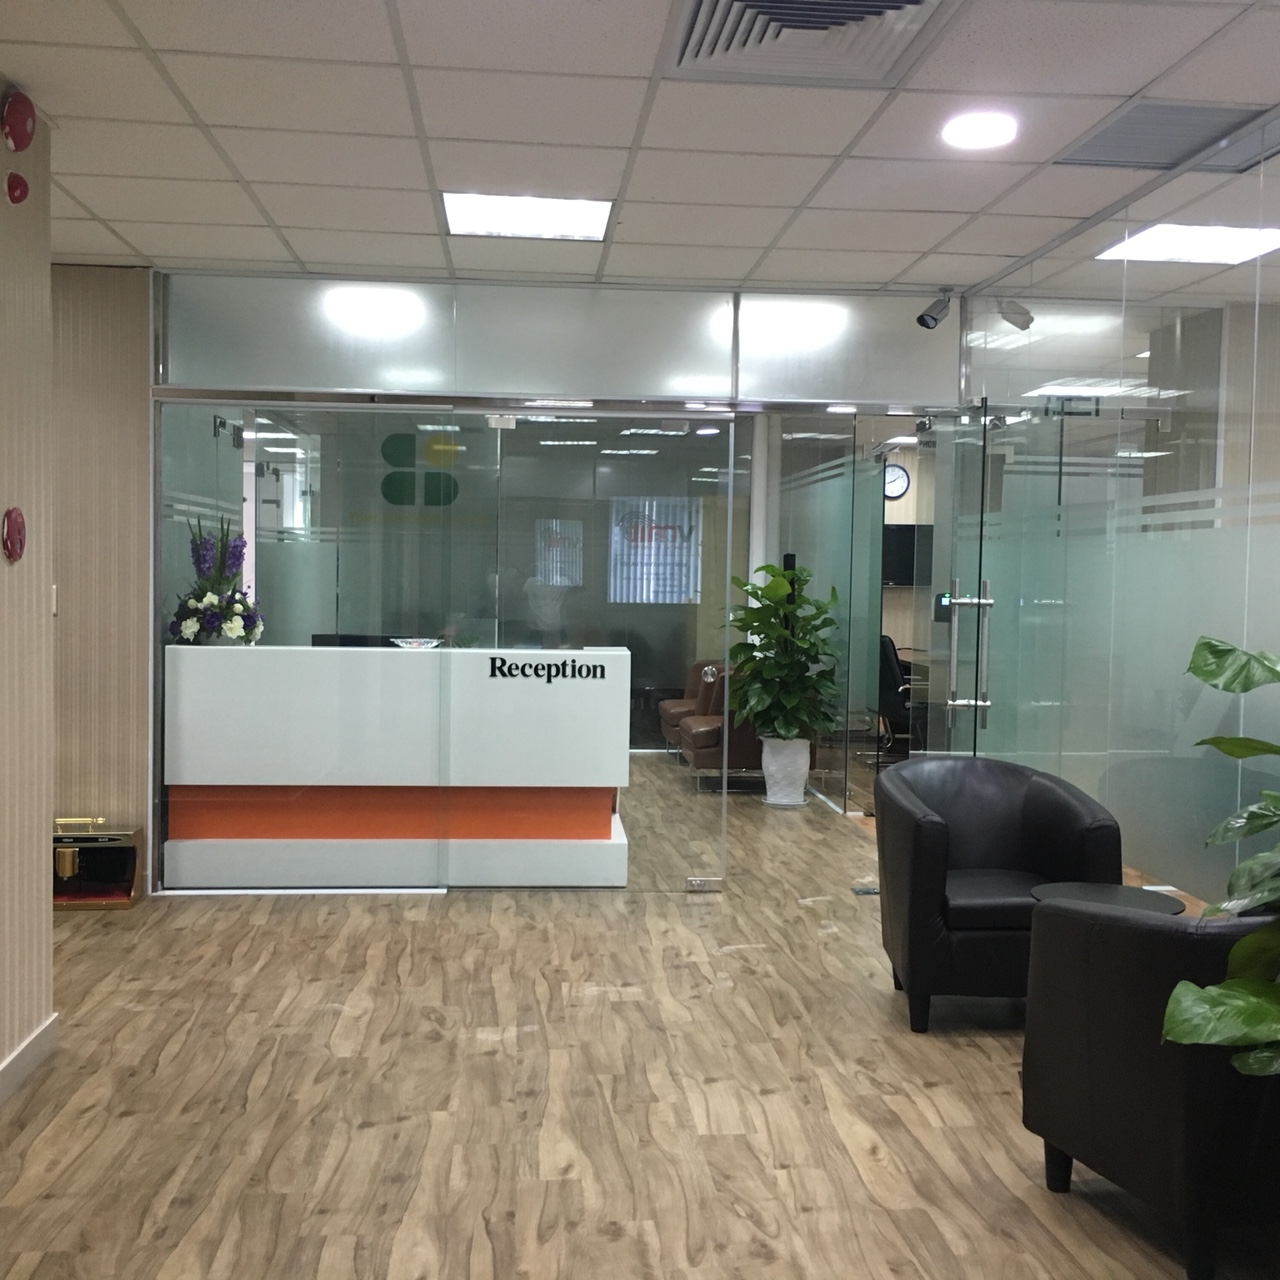 Serviced Office in Cau Giay, VietA tower, 3A tower and AC tower